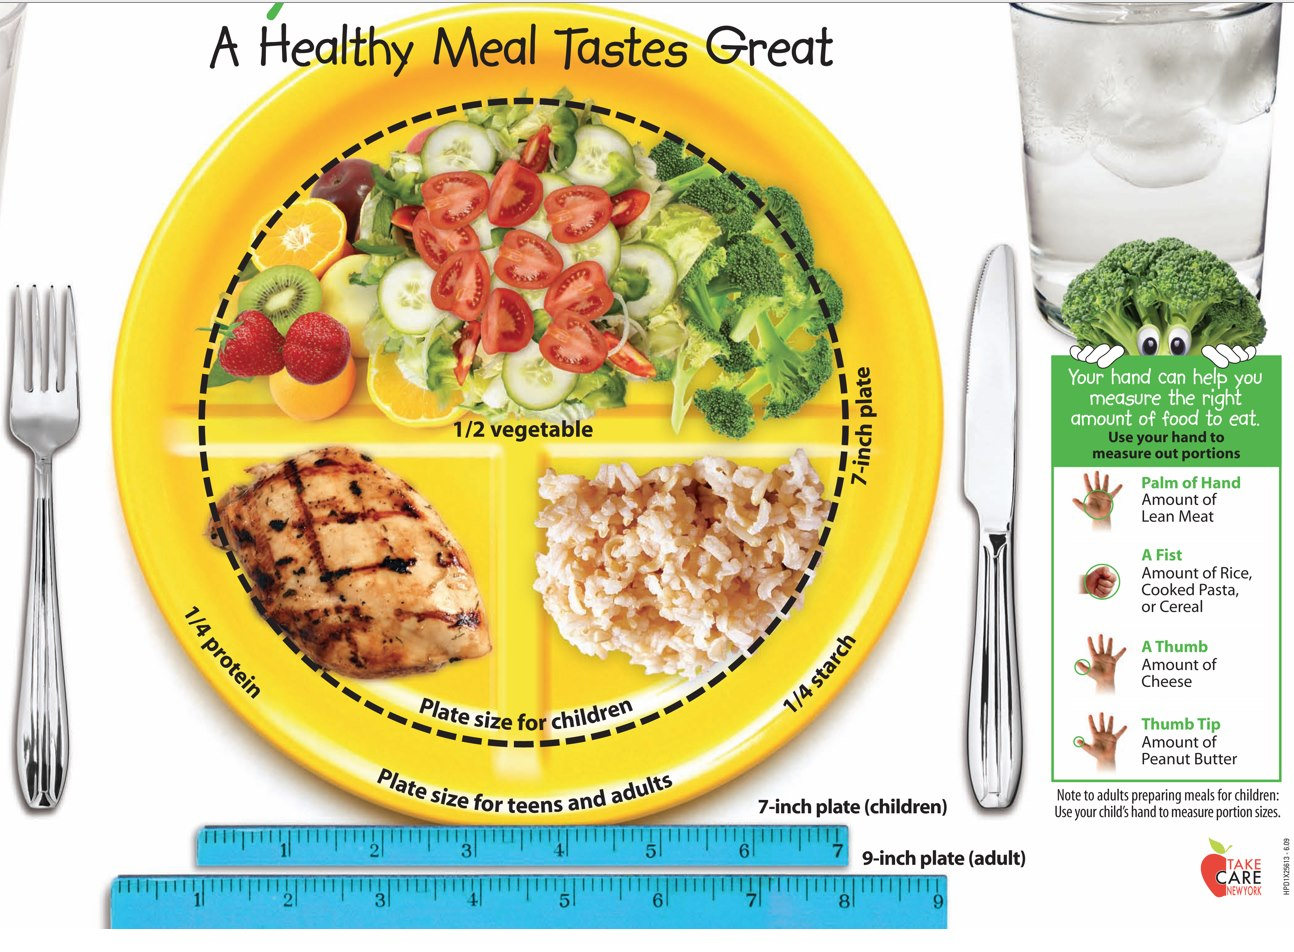 food portion sizes 8 tips for controlling portion sizes first, fill up your plate with green veggies, and get full on those before eating other food then, when ordering a meal.